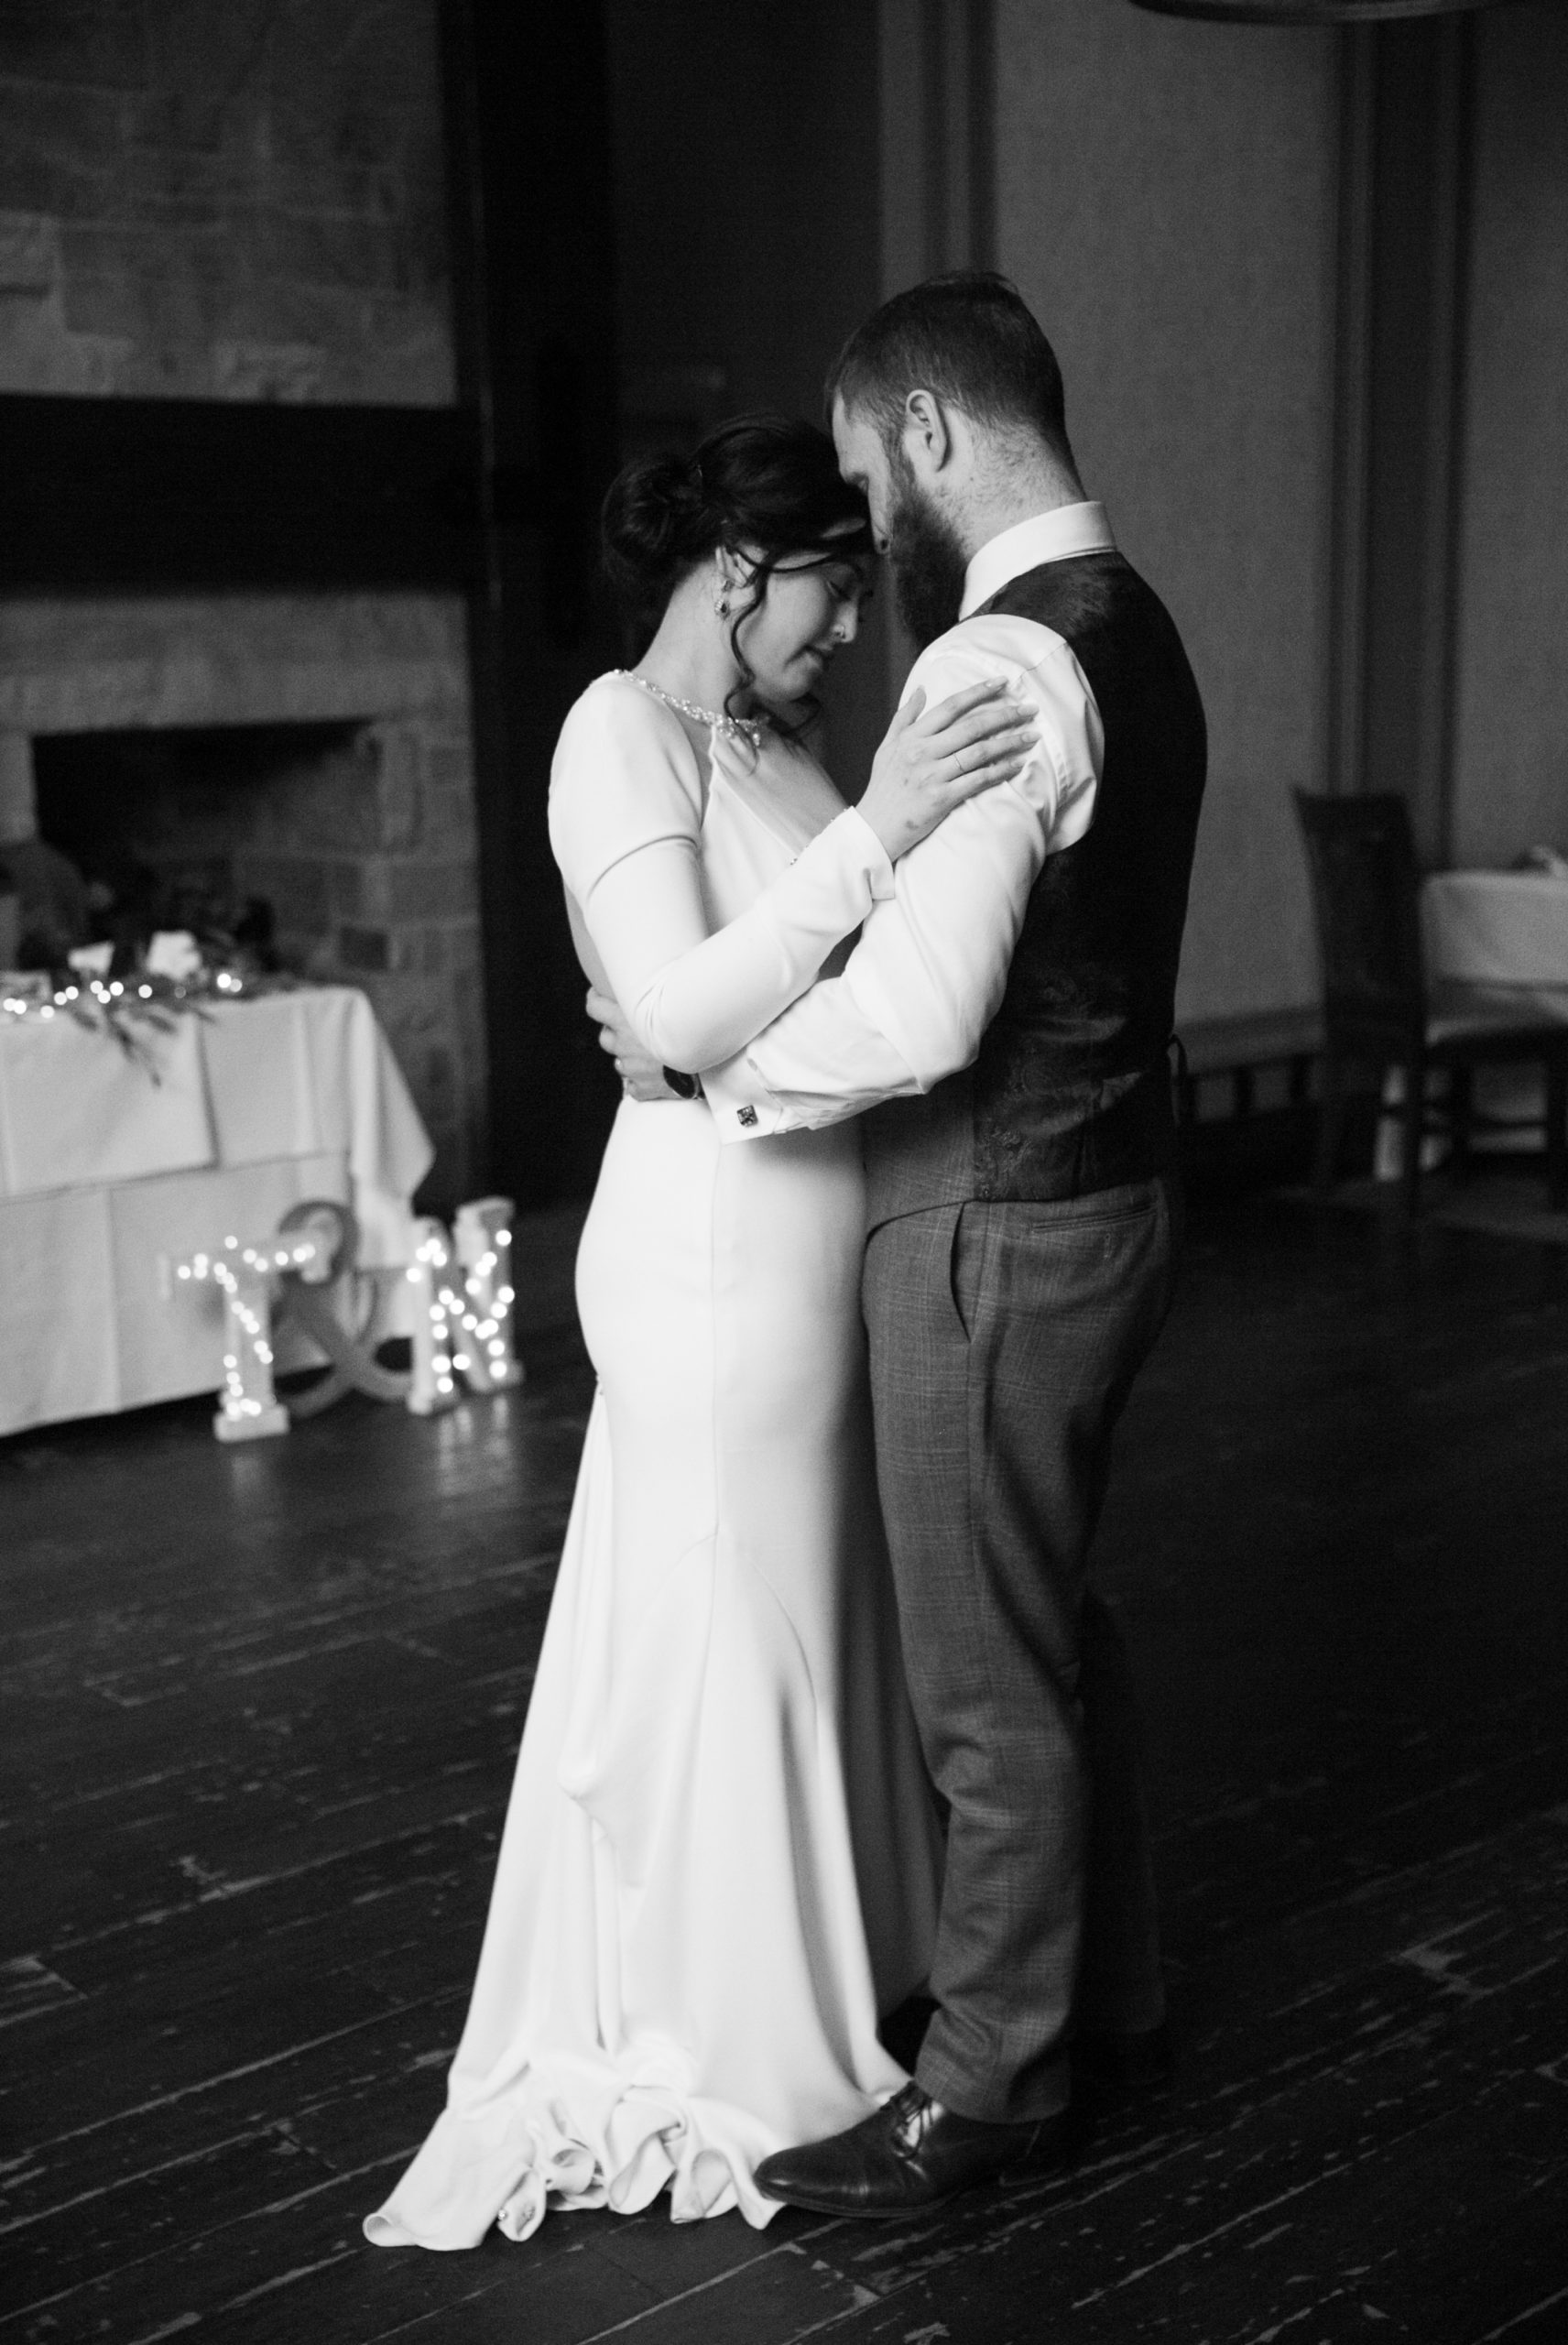 First Dance Black and WhiteAncaster Mill Winter Wedding, Ancaster, Hamilton, Zsuzsi Pal Photography